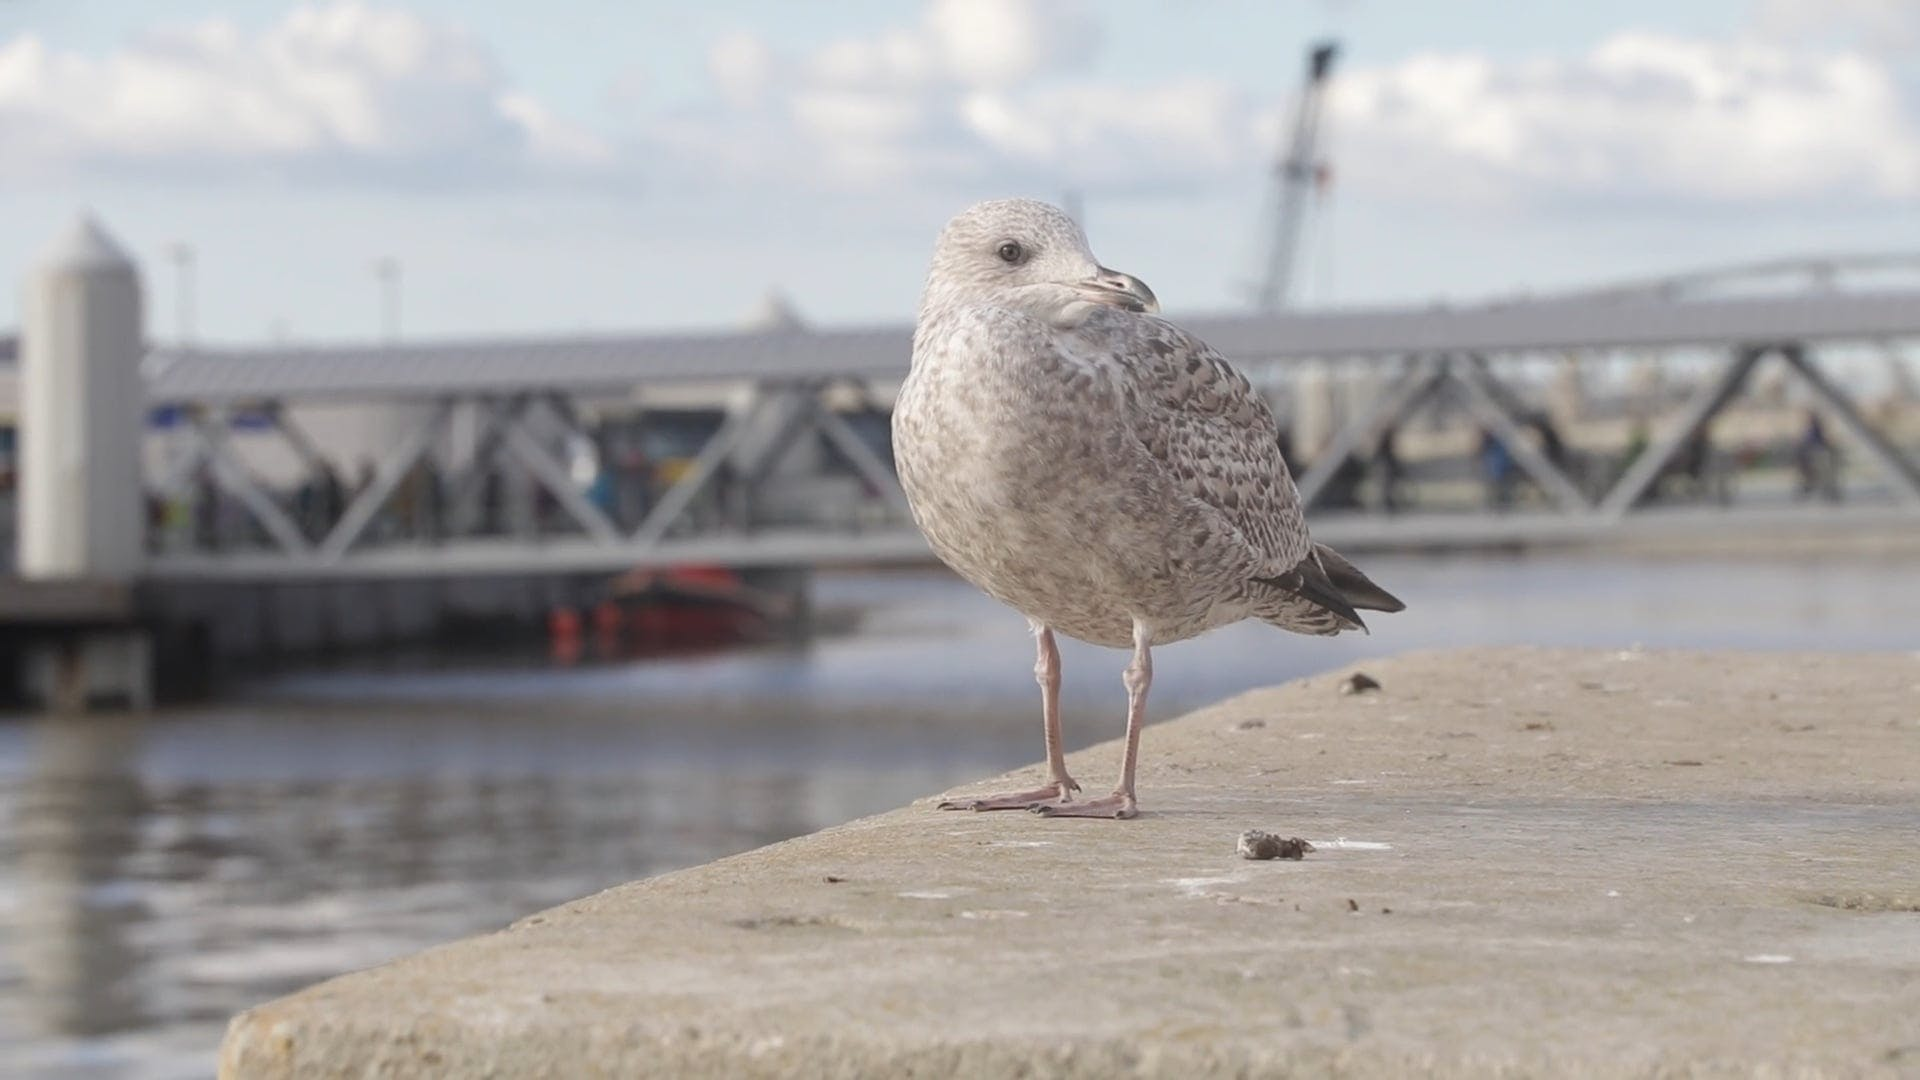 Seagull Perched On A Concrete